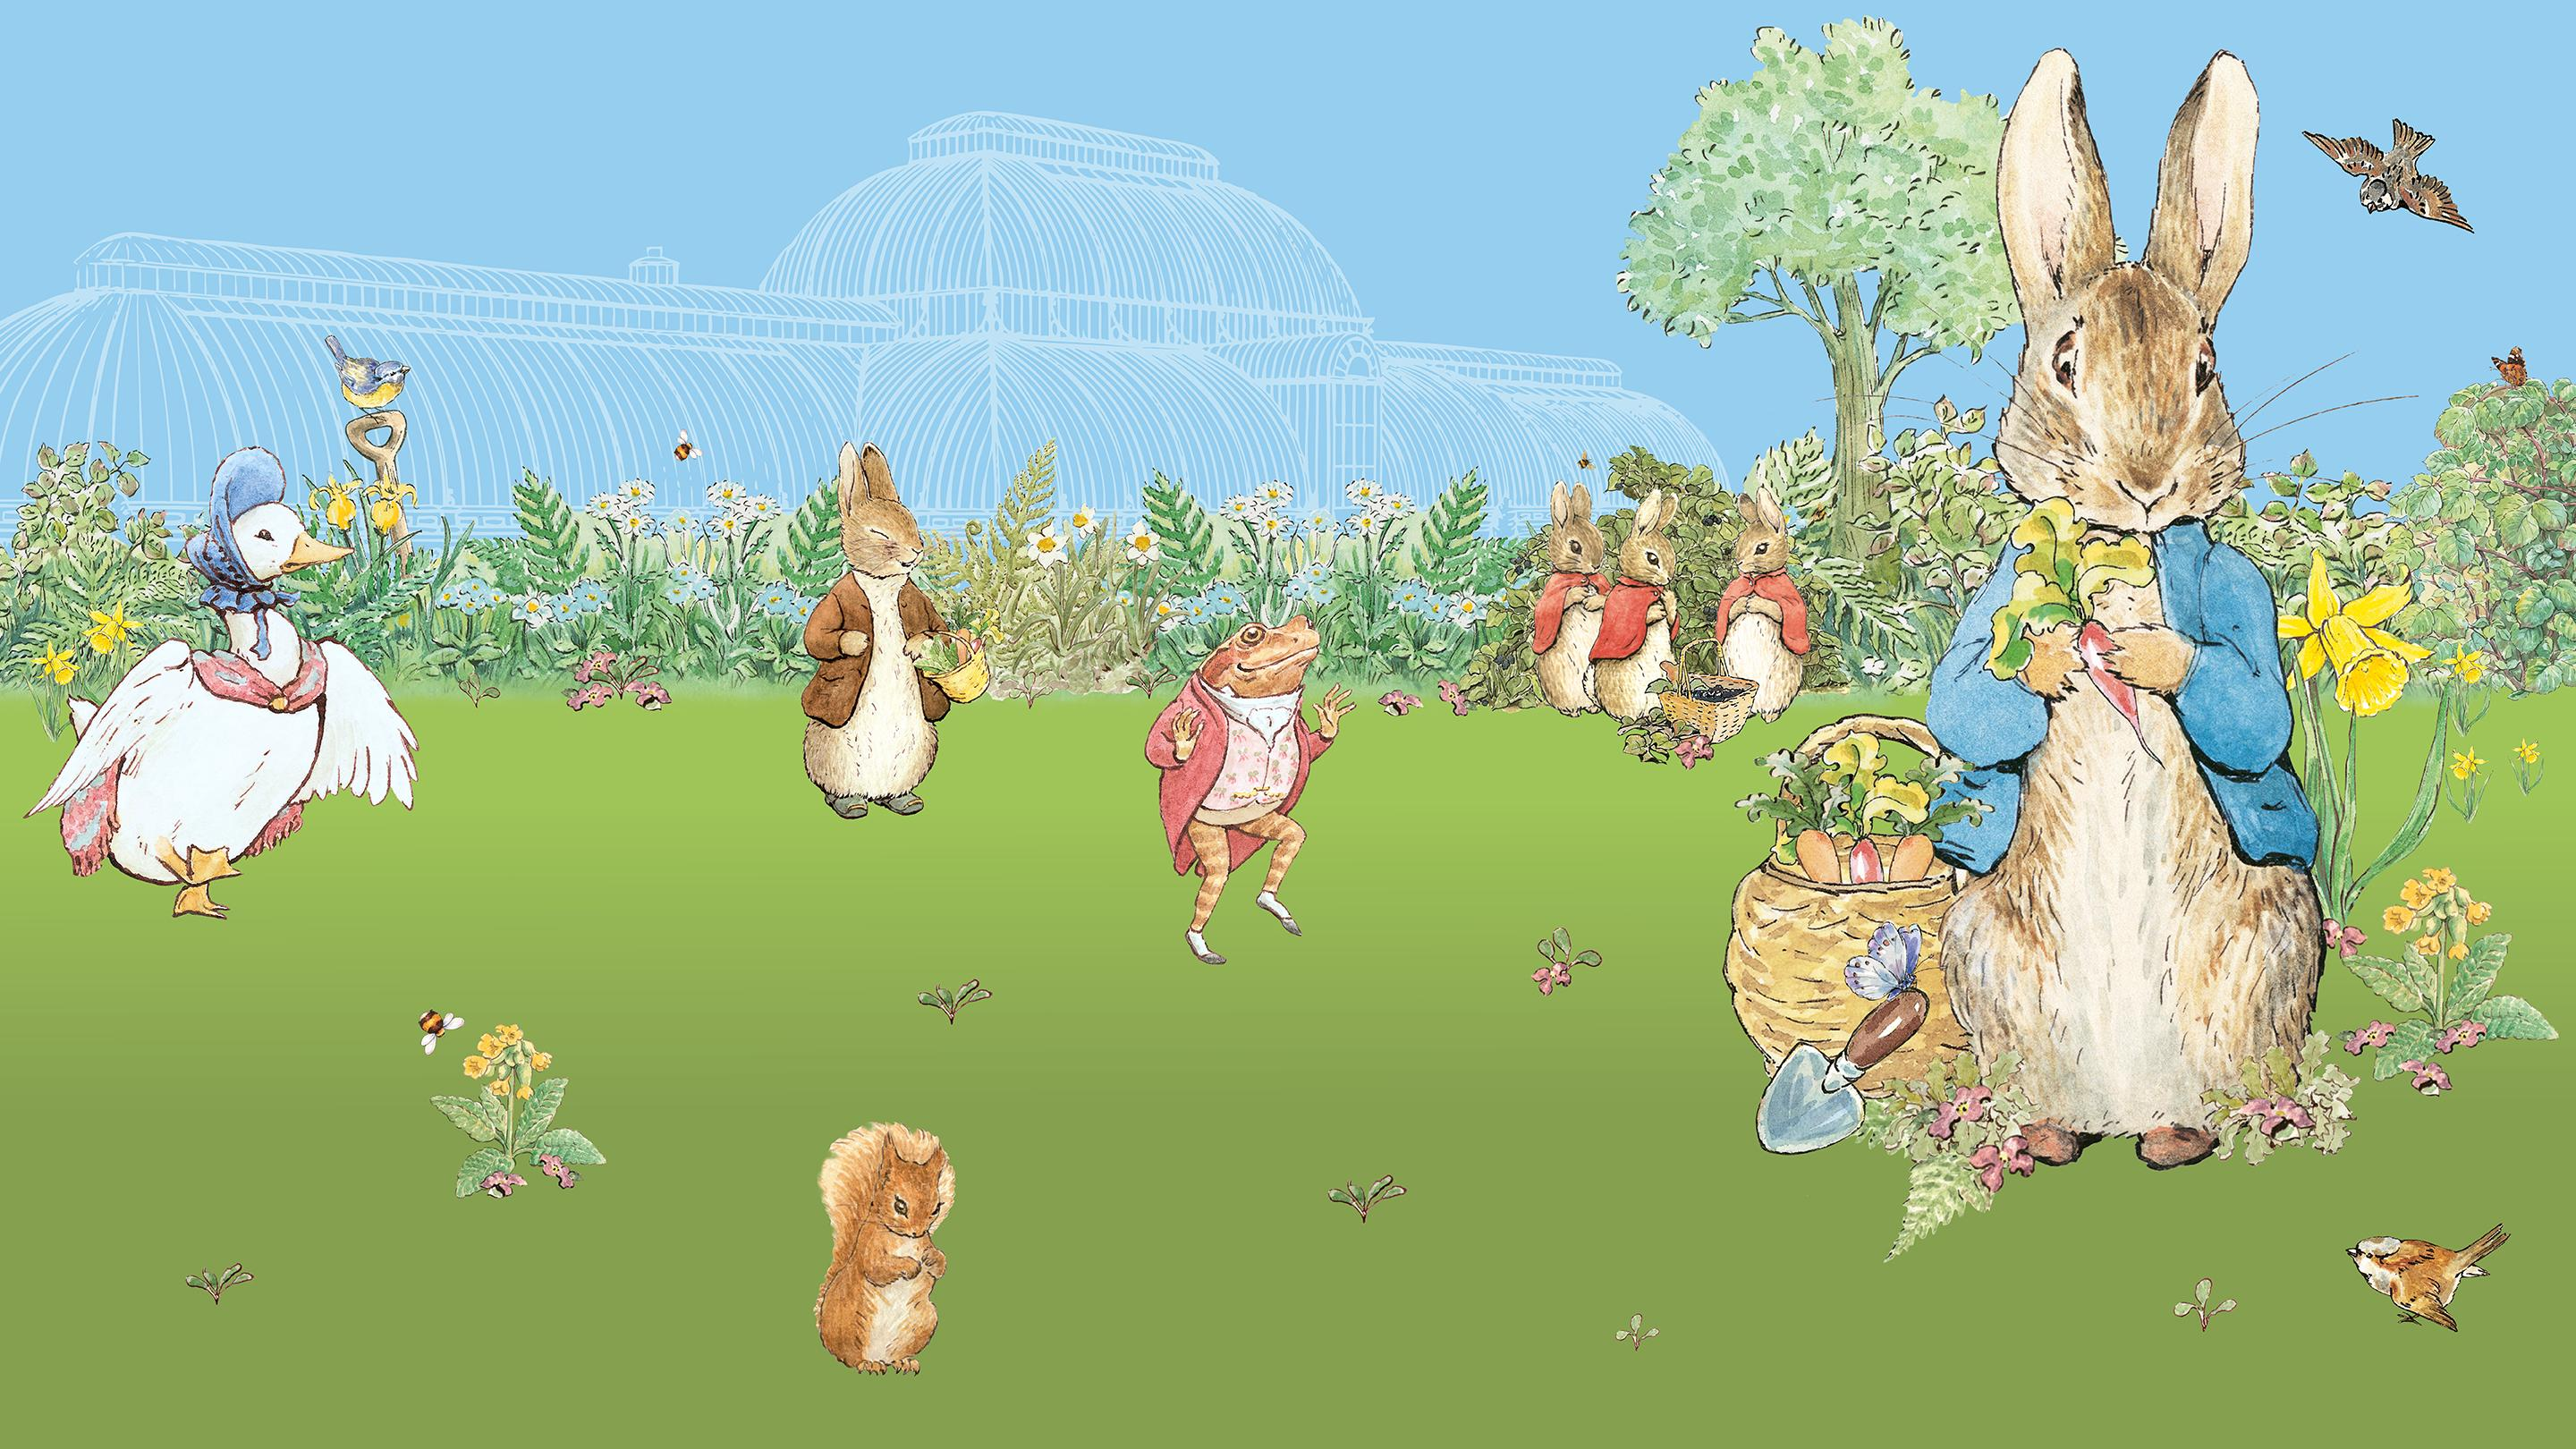 Family fun and garden adventures this Easter - Kew, Peter Rabbit and friends